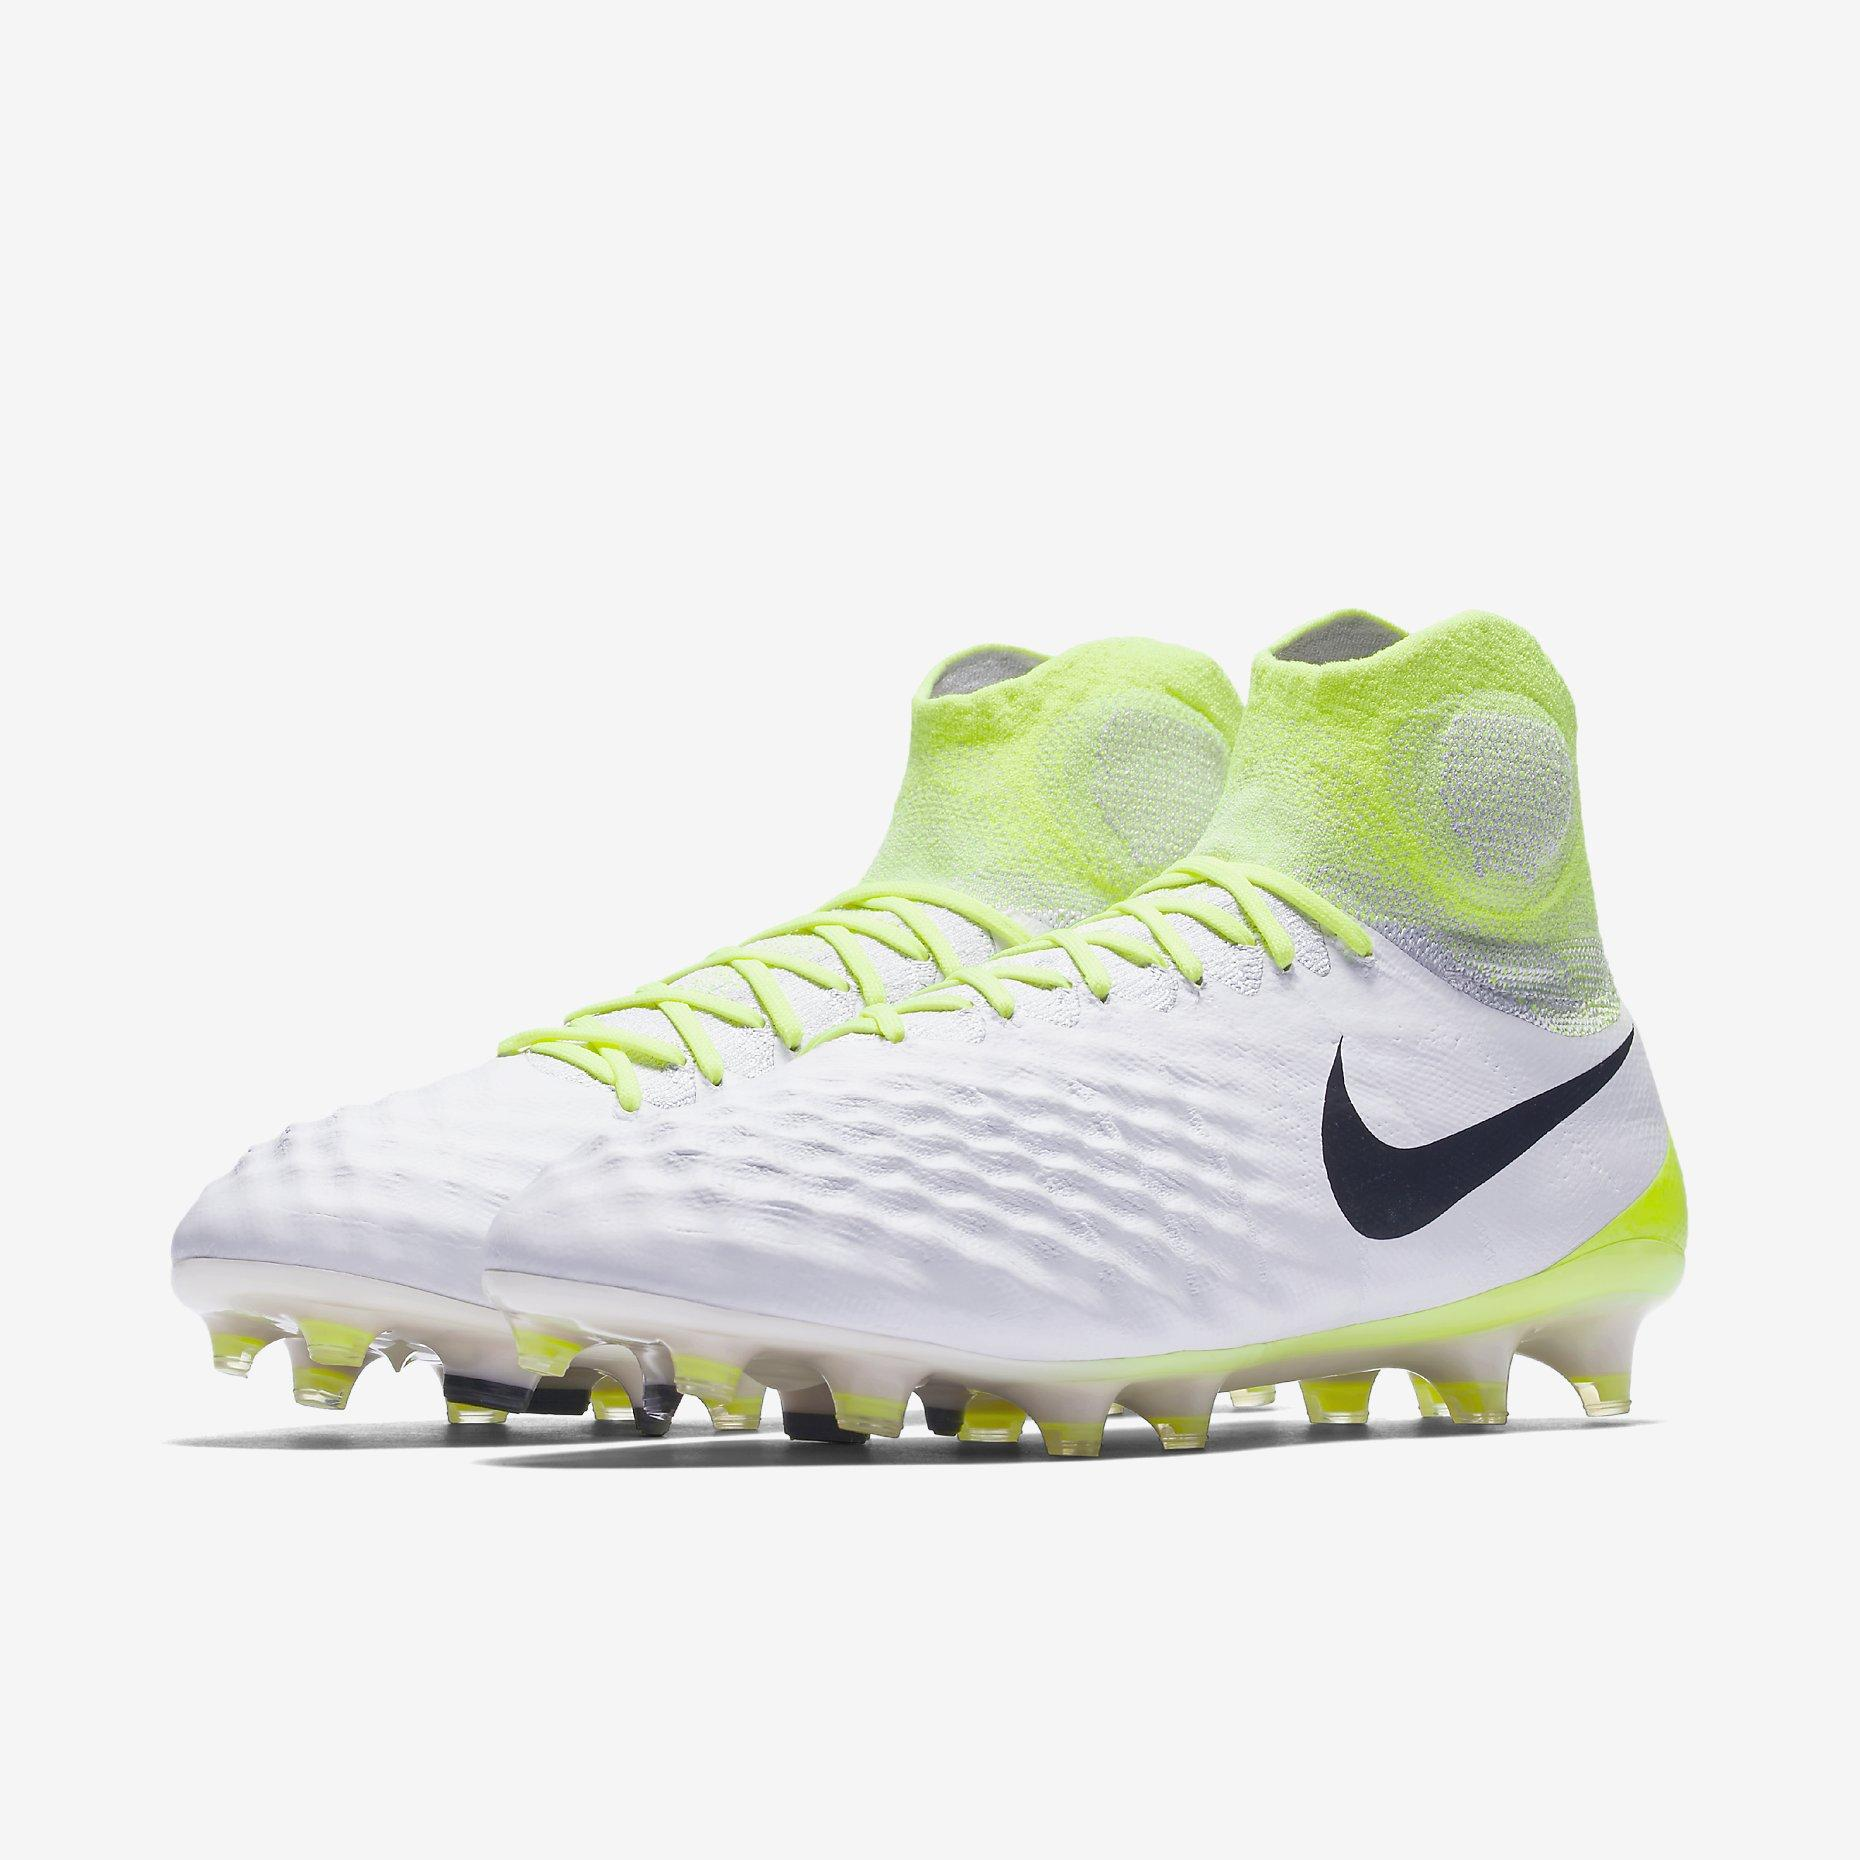 best cheap fc9d1 8ab9c NIKE MAGISTA OBRA II FIRM GROUND FOOTBALL BOOTS